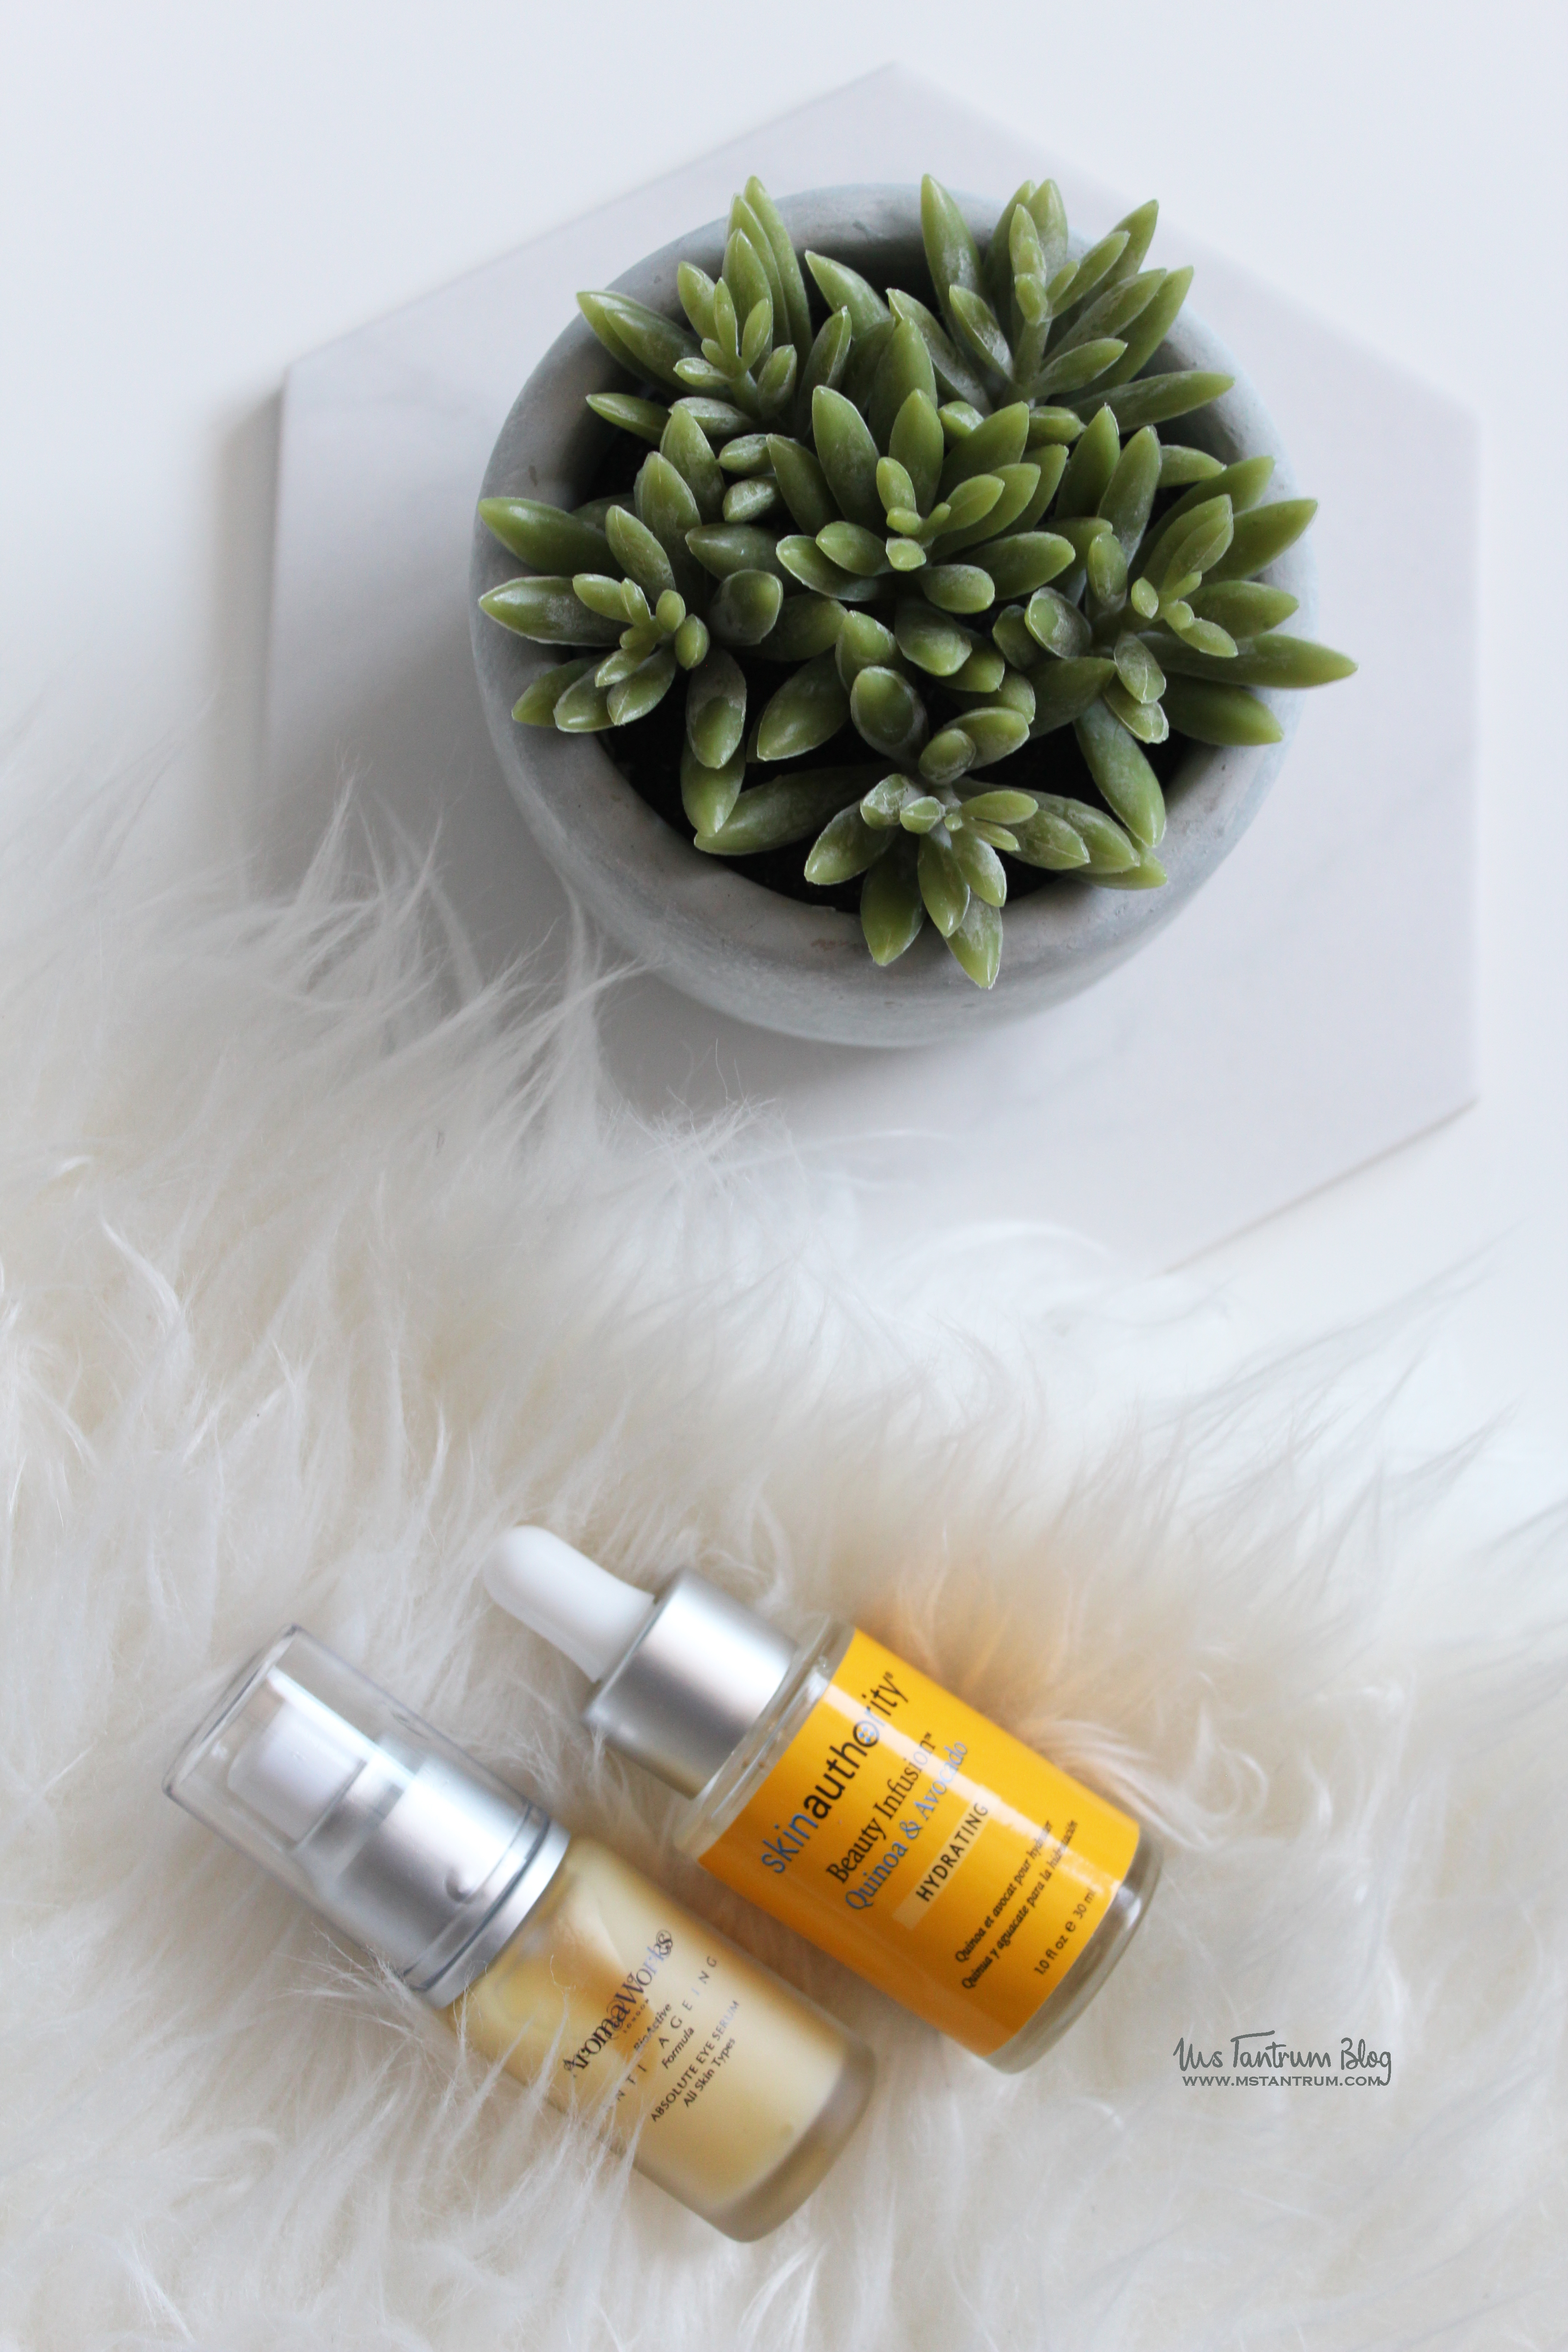 Skin Authority Infusion drops and Aromaworks eye serum on Ms Tantrum Blog